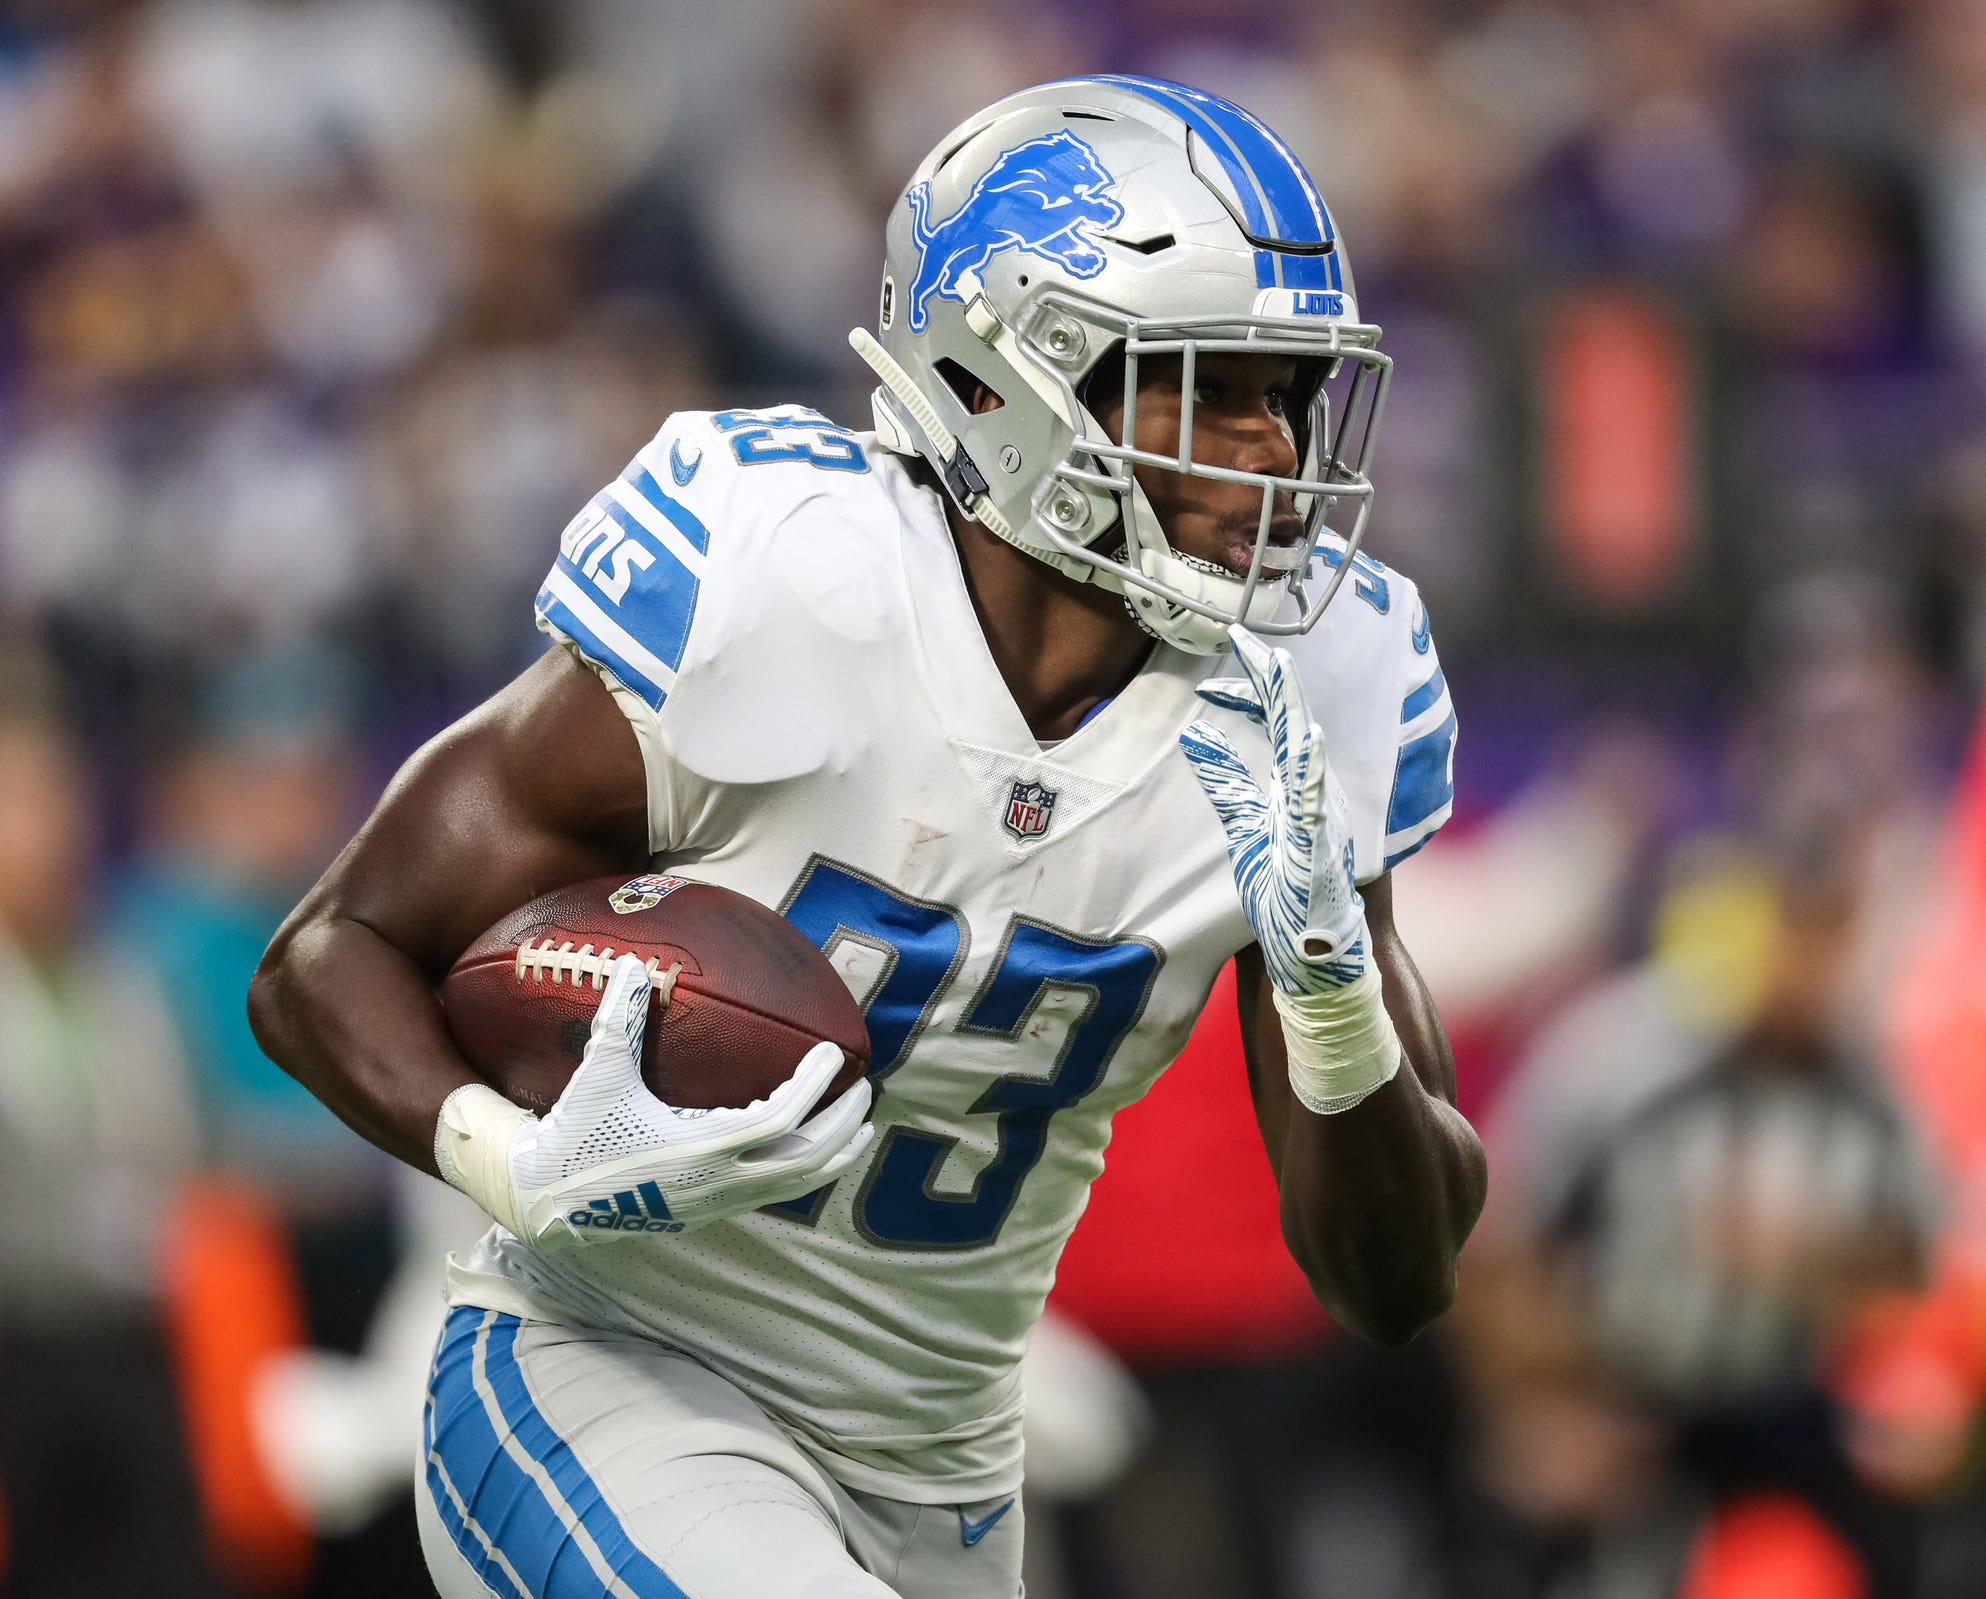 Kerryon Johnson carries the ball during the first quarter Sunday.